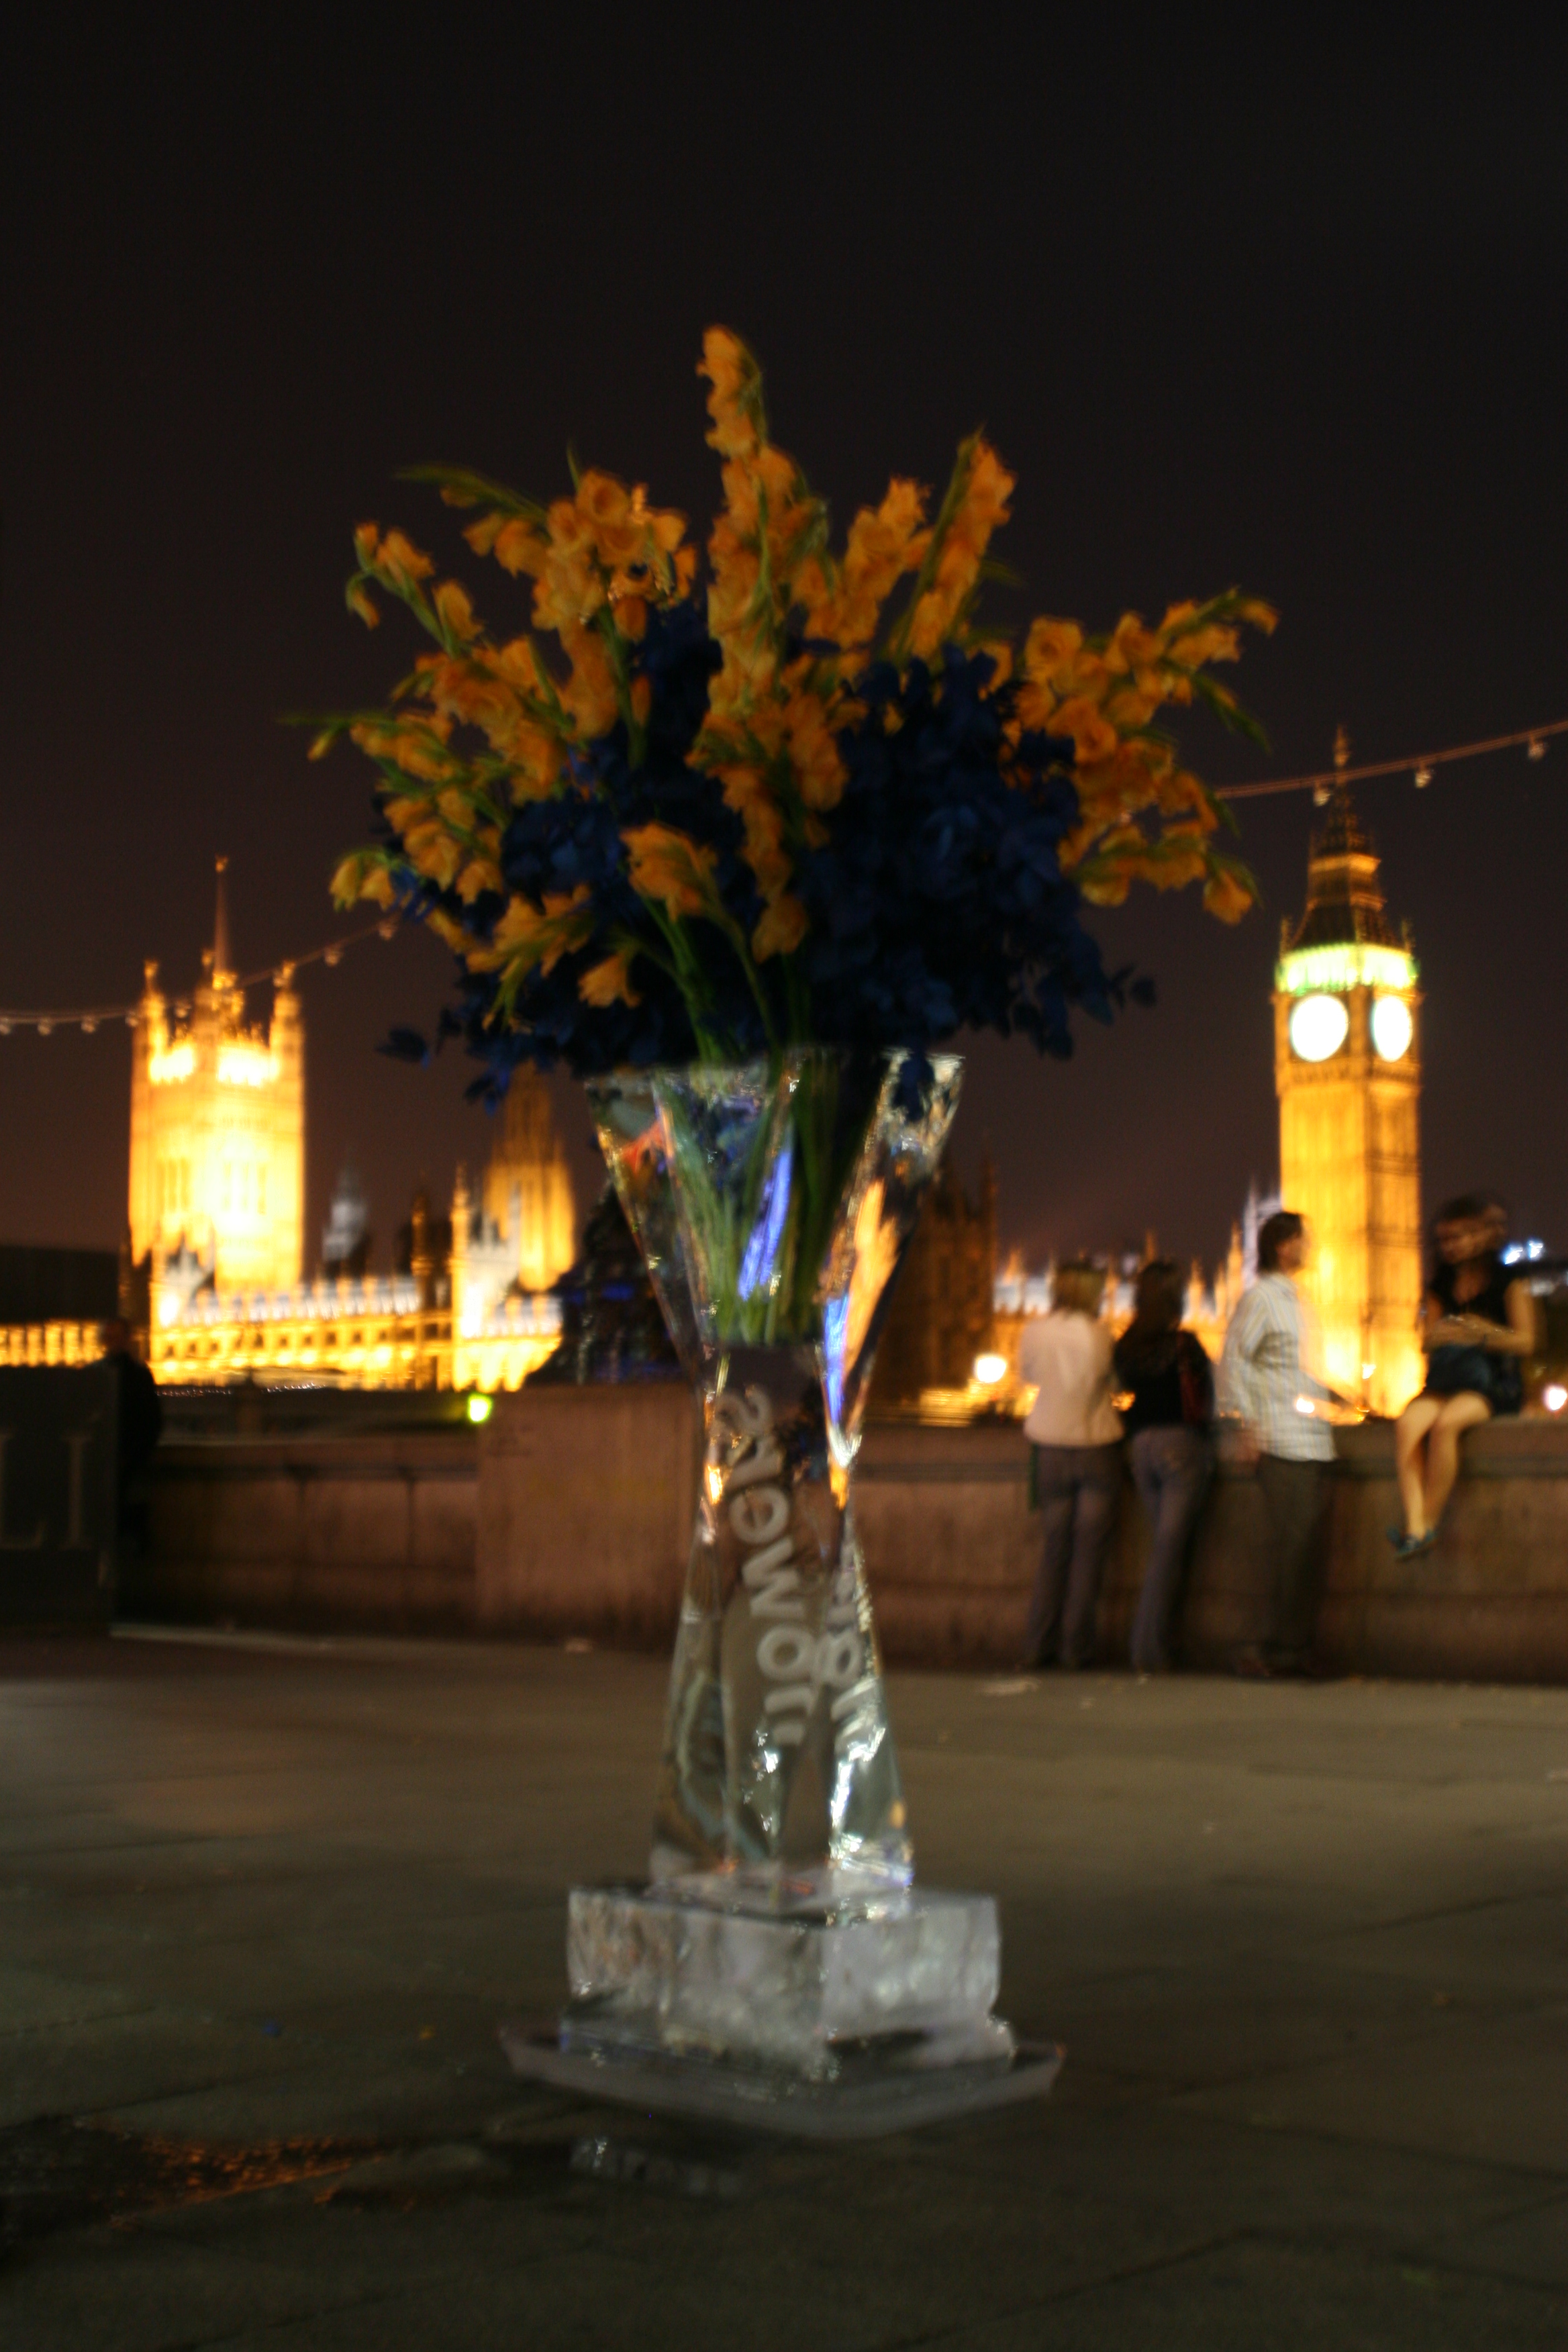 Ice Vase on the London Embankment